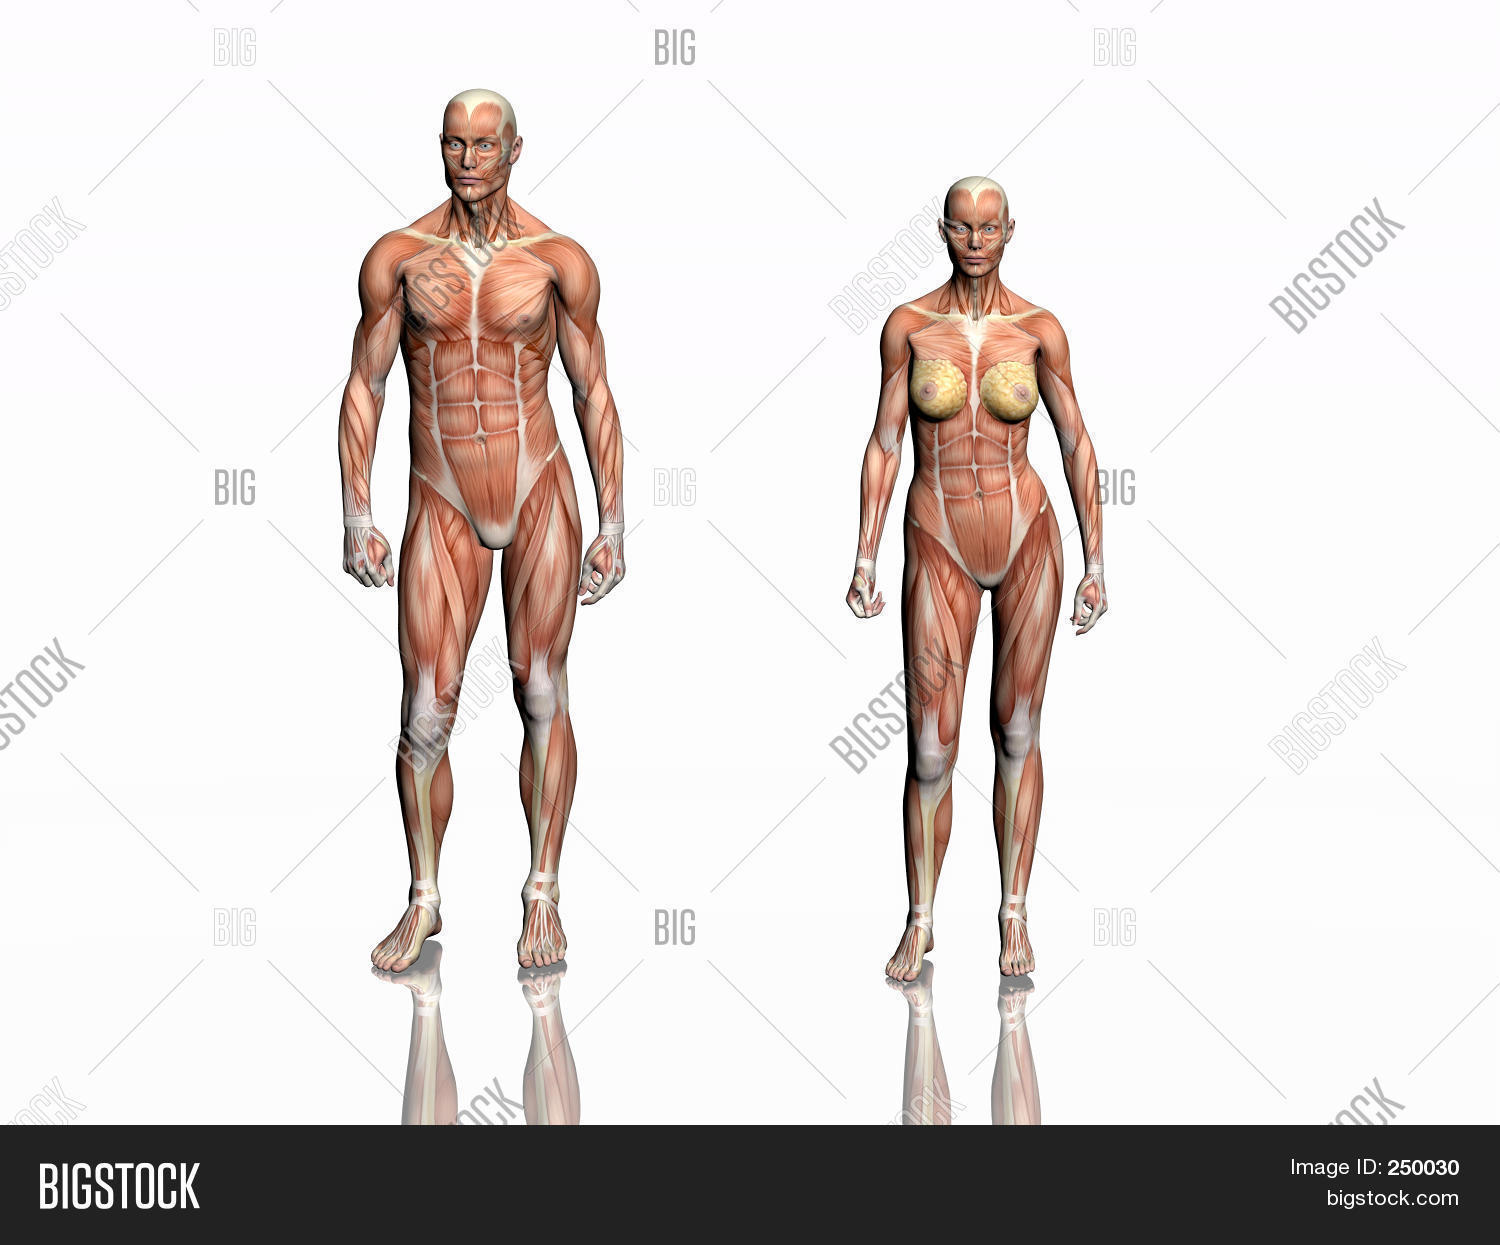 Anatomy Man Woman Image & Photo (Free Trial) | Bigstock